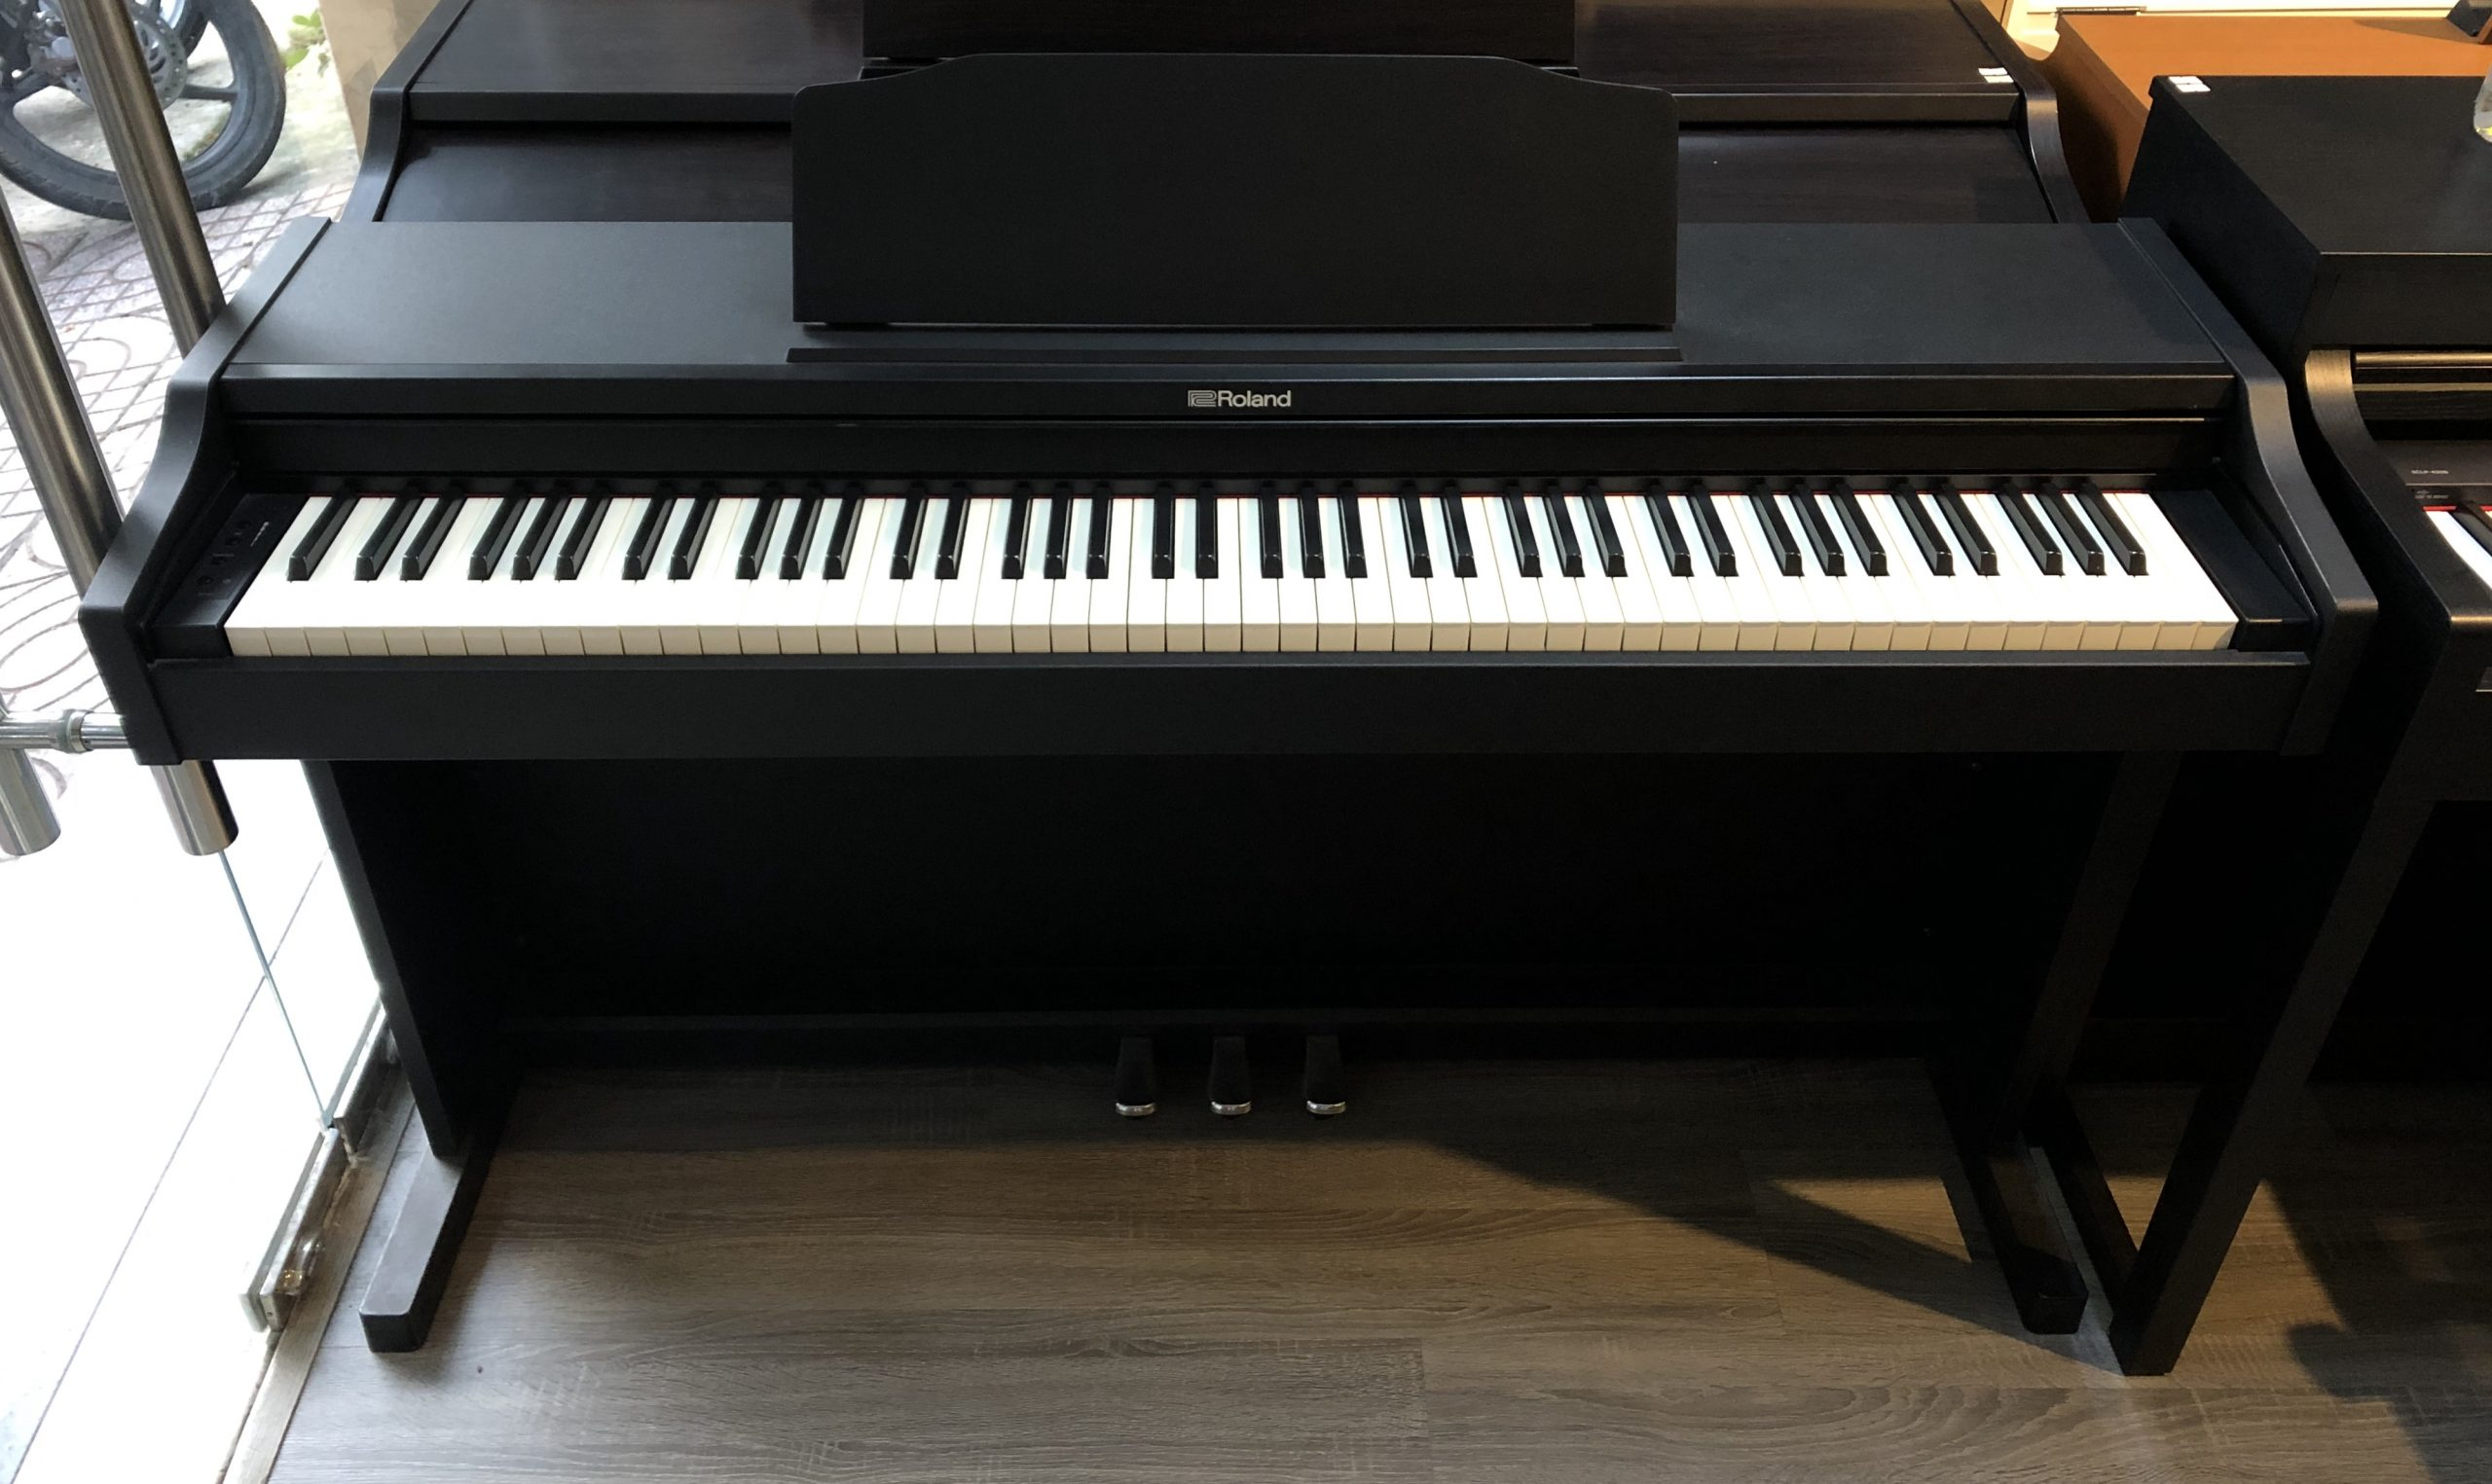 piano-điện-roland-rp-102-8